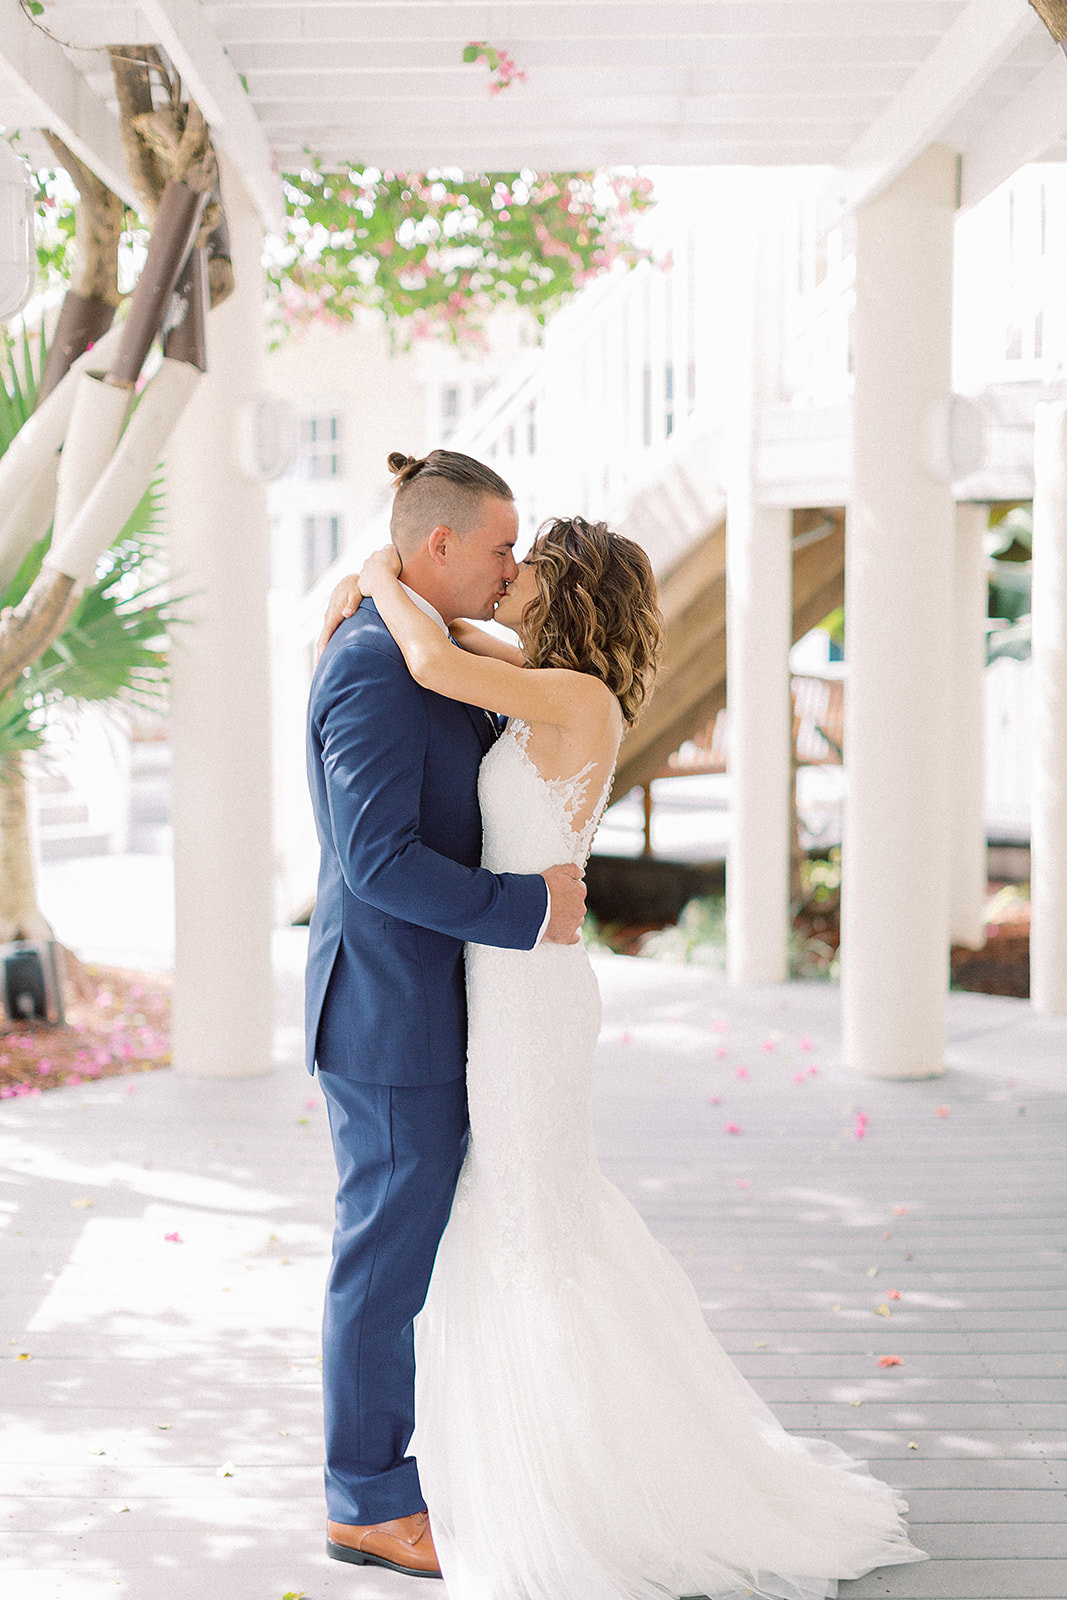 Aubry___Bill_Forsyth_Hyatt_Centric_Key_West_Wedding_Photographer_Casie_Marie_Photography-185